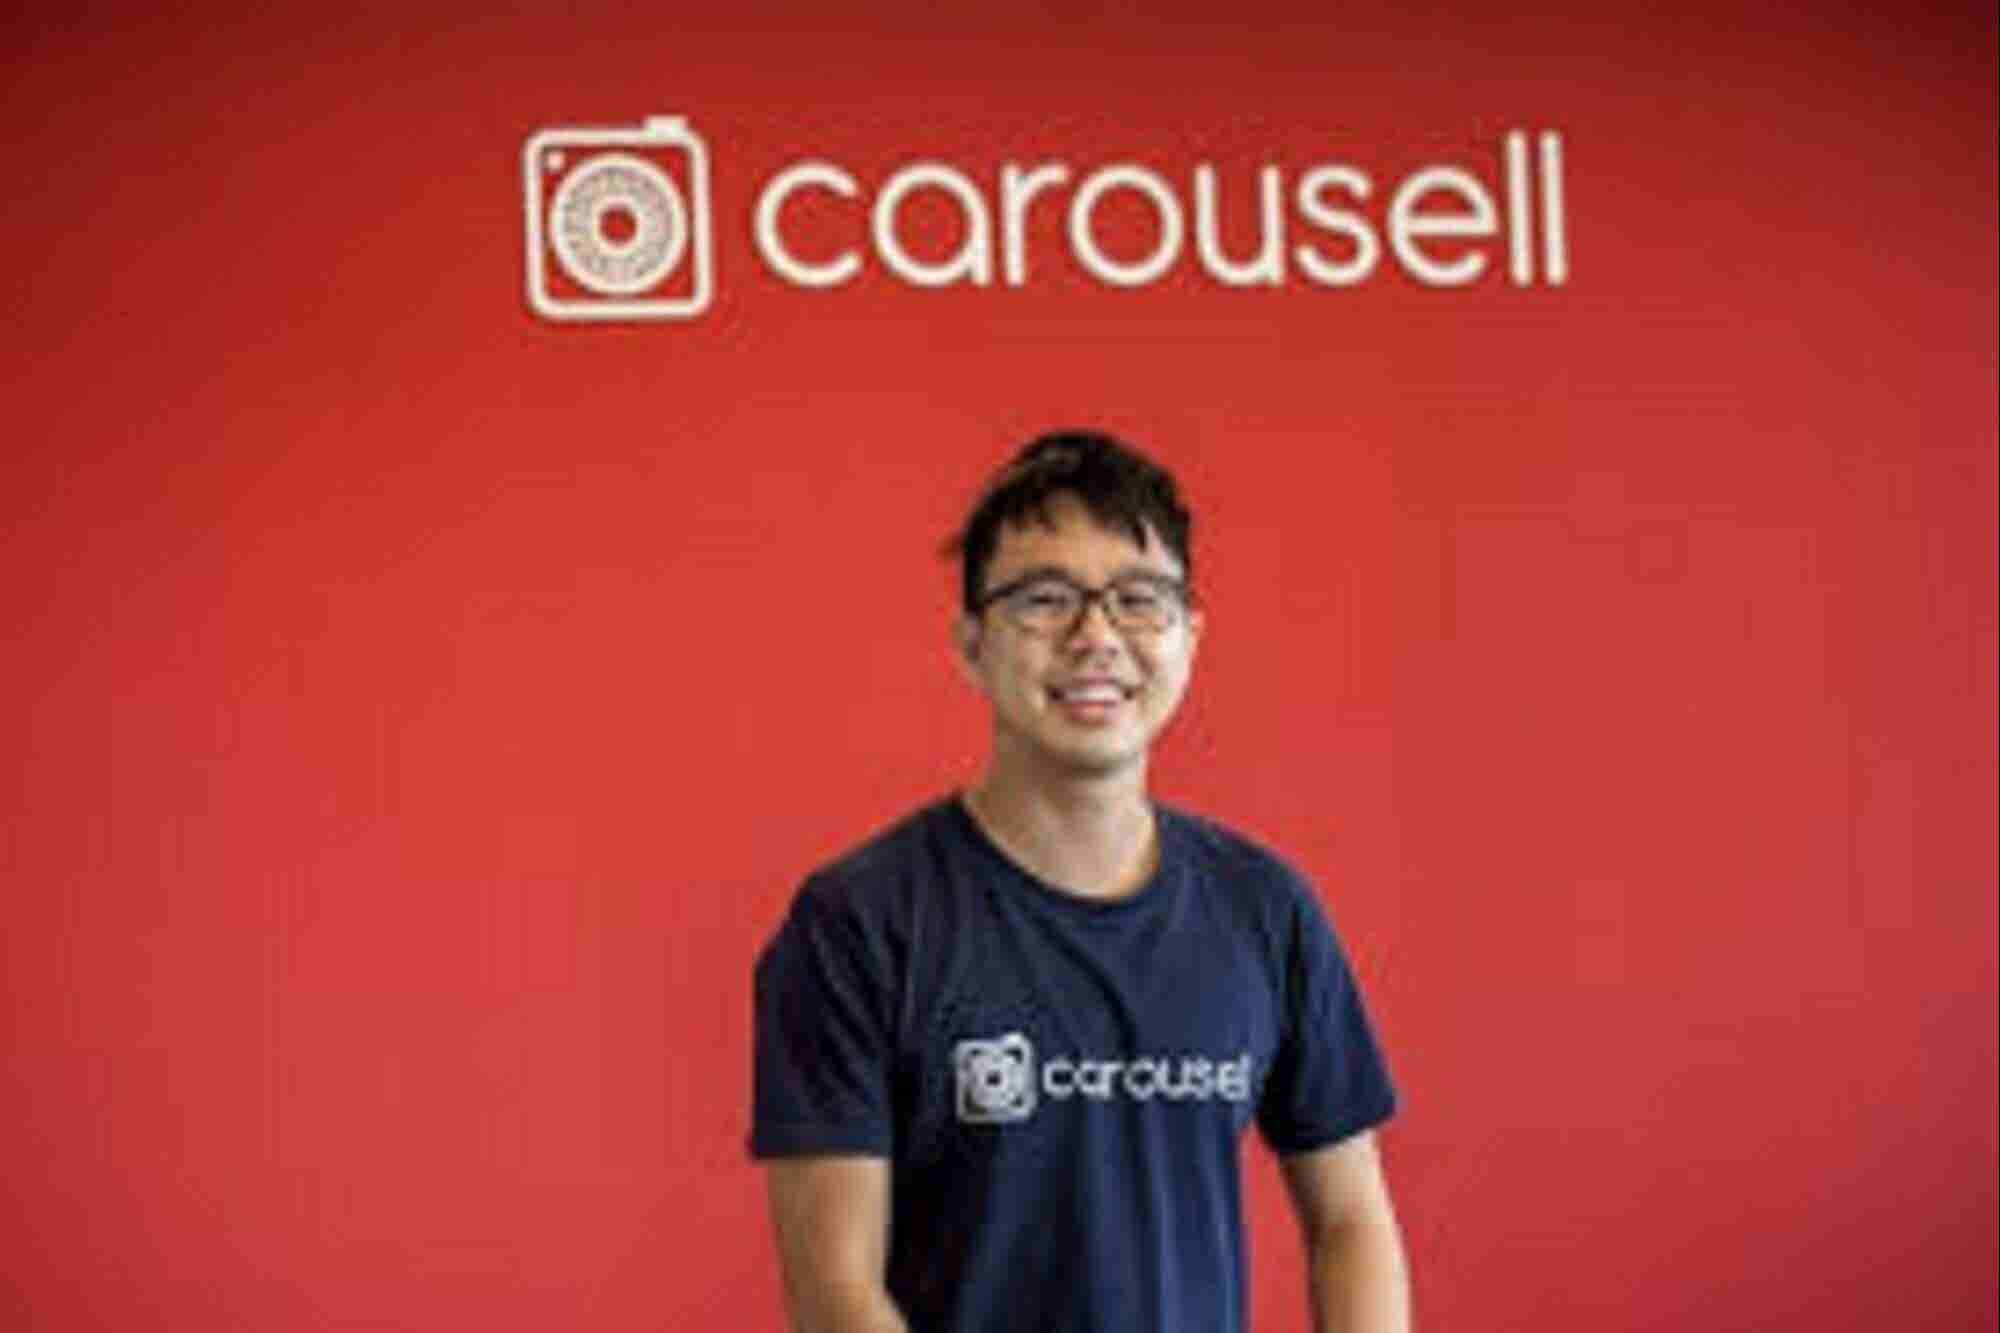 How this Snap-and-sell Startup became a Household Name in Singapore and Beyond